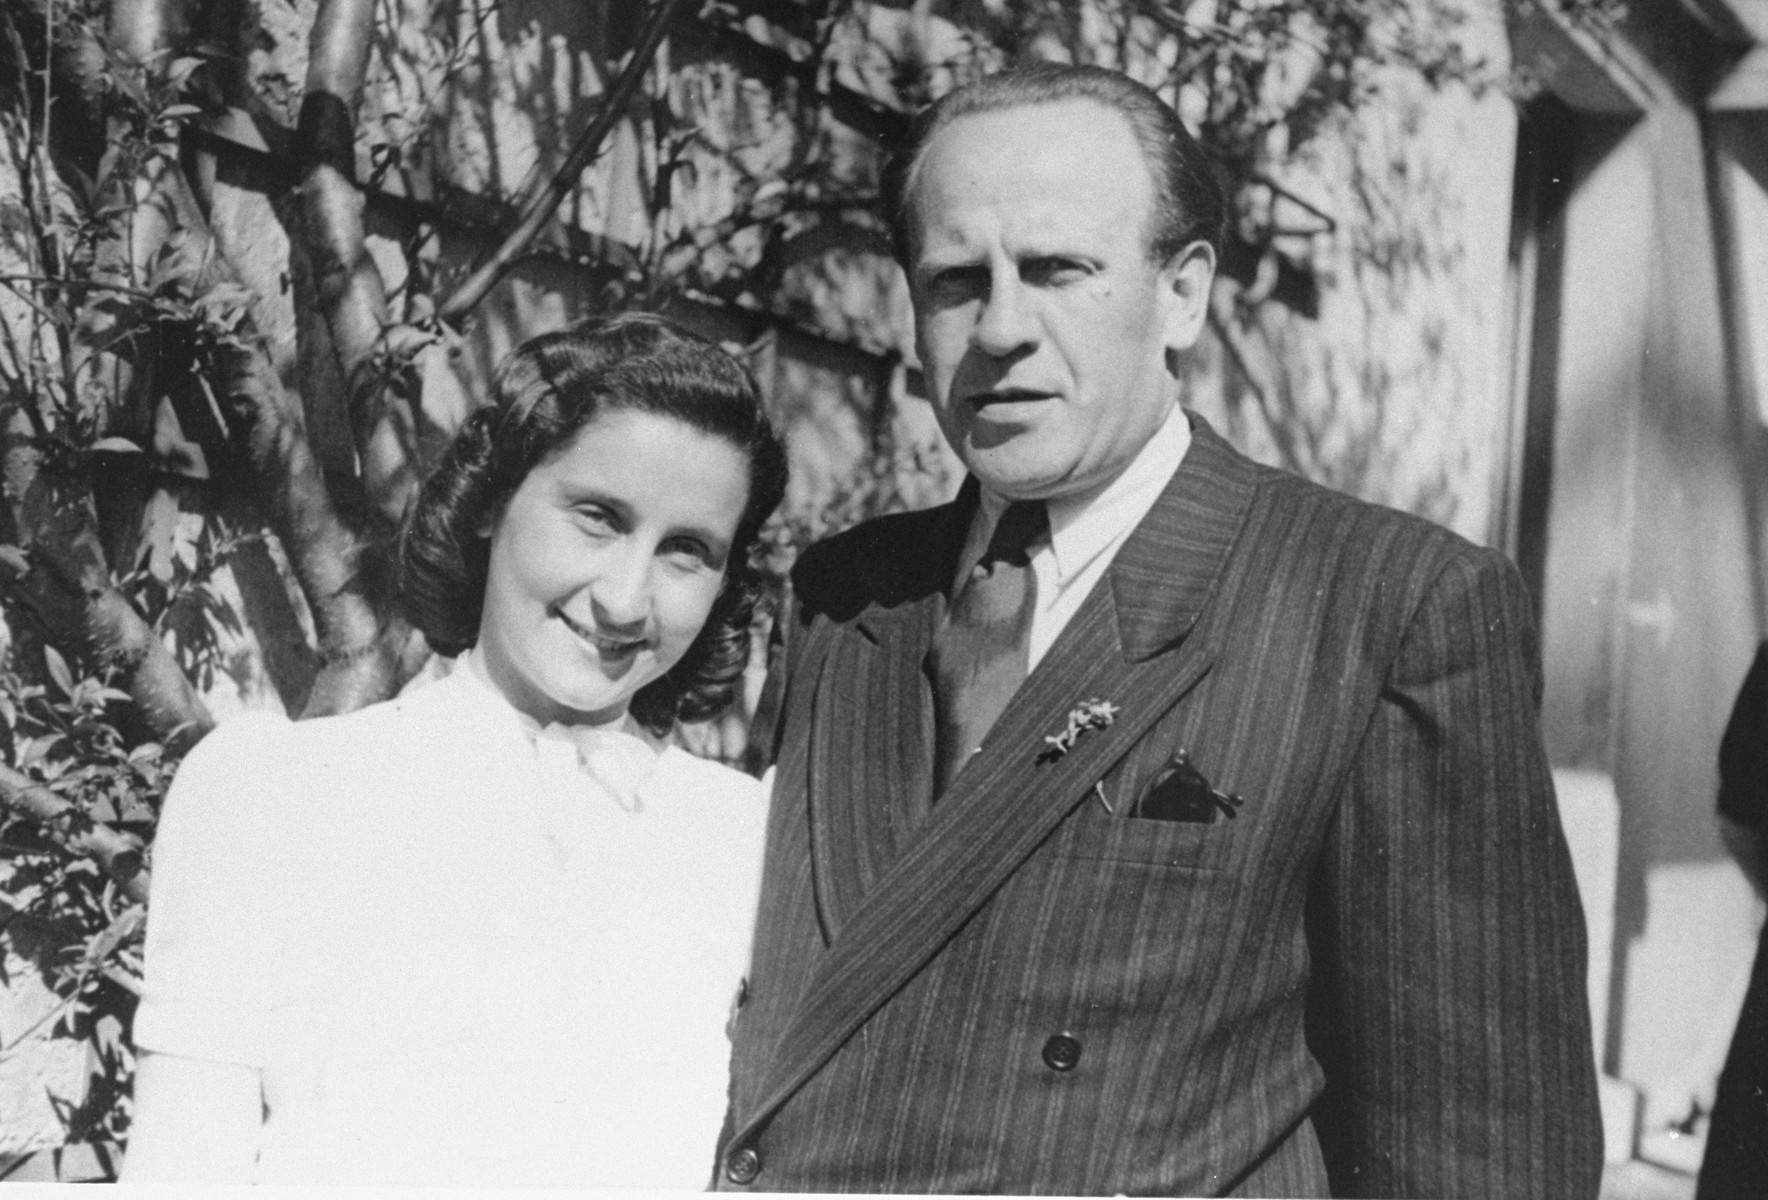 Oskar Schindler with Ludmila Pfefferberg-Page at a reunion in Munich, 1946.